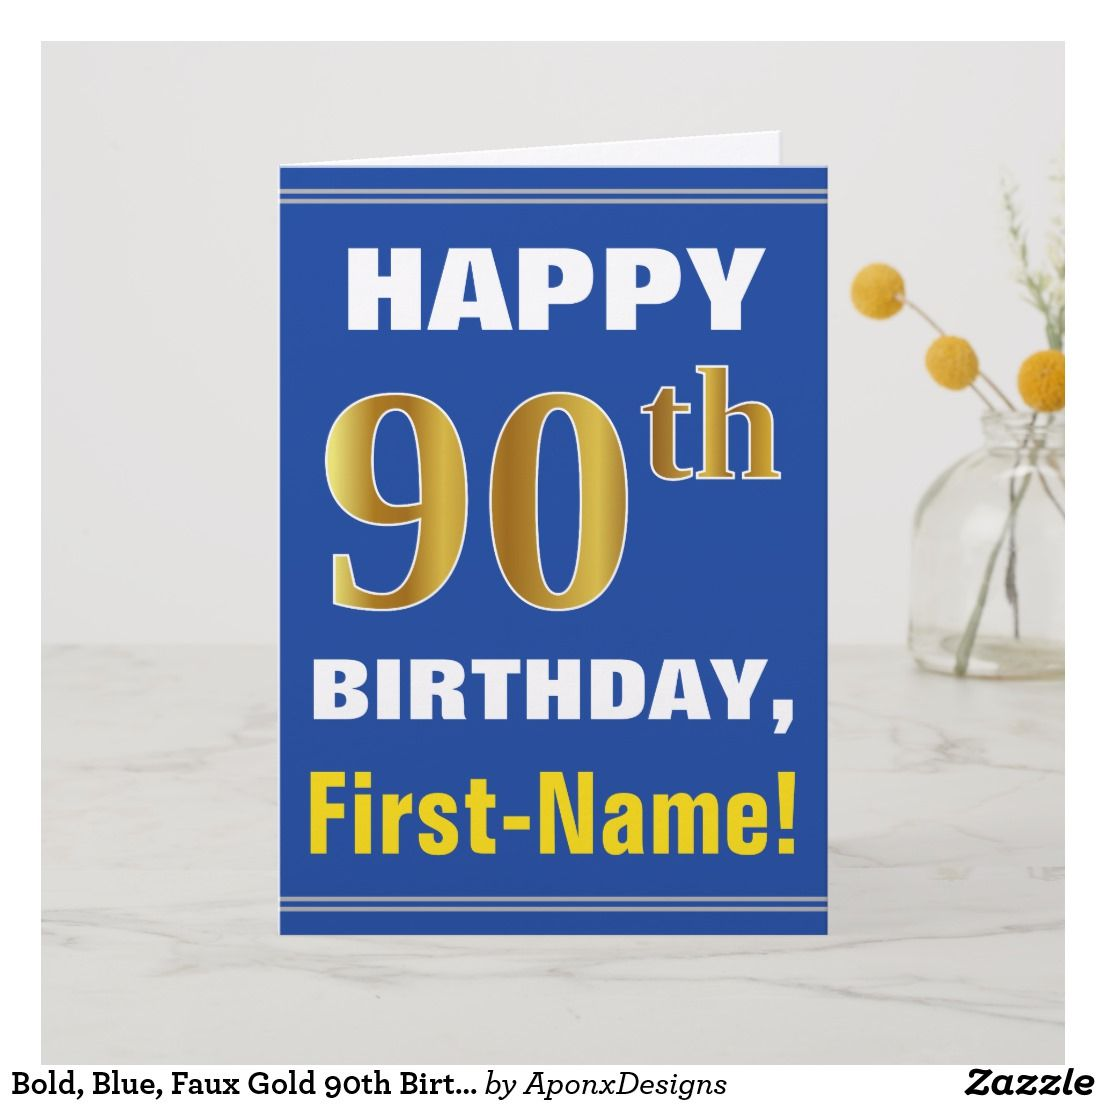 Bold Blue Faux Gold 90th Birthday W Name Card Cardsfunny Cardsgreeting Cardshappy Cardbirthday Greeting Cardsonline